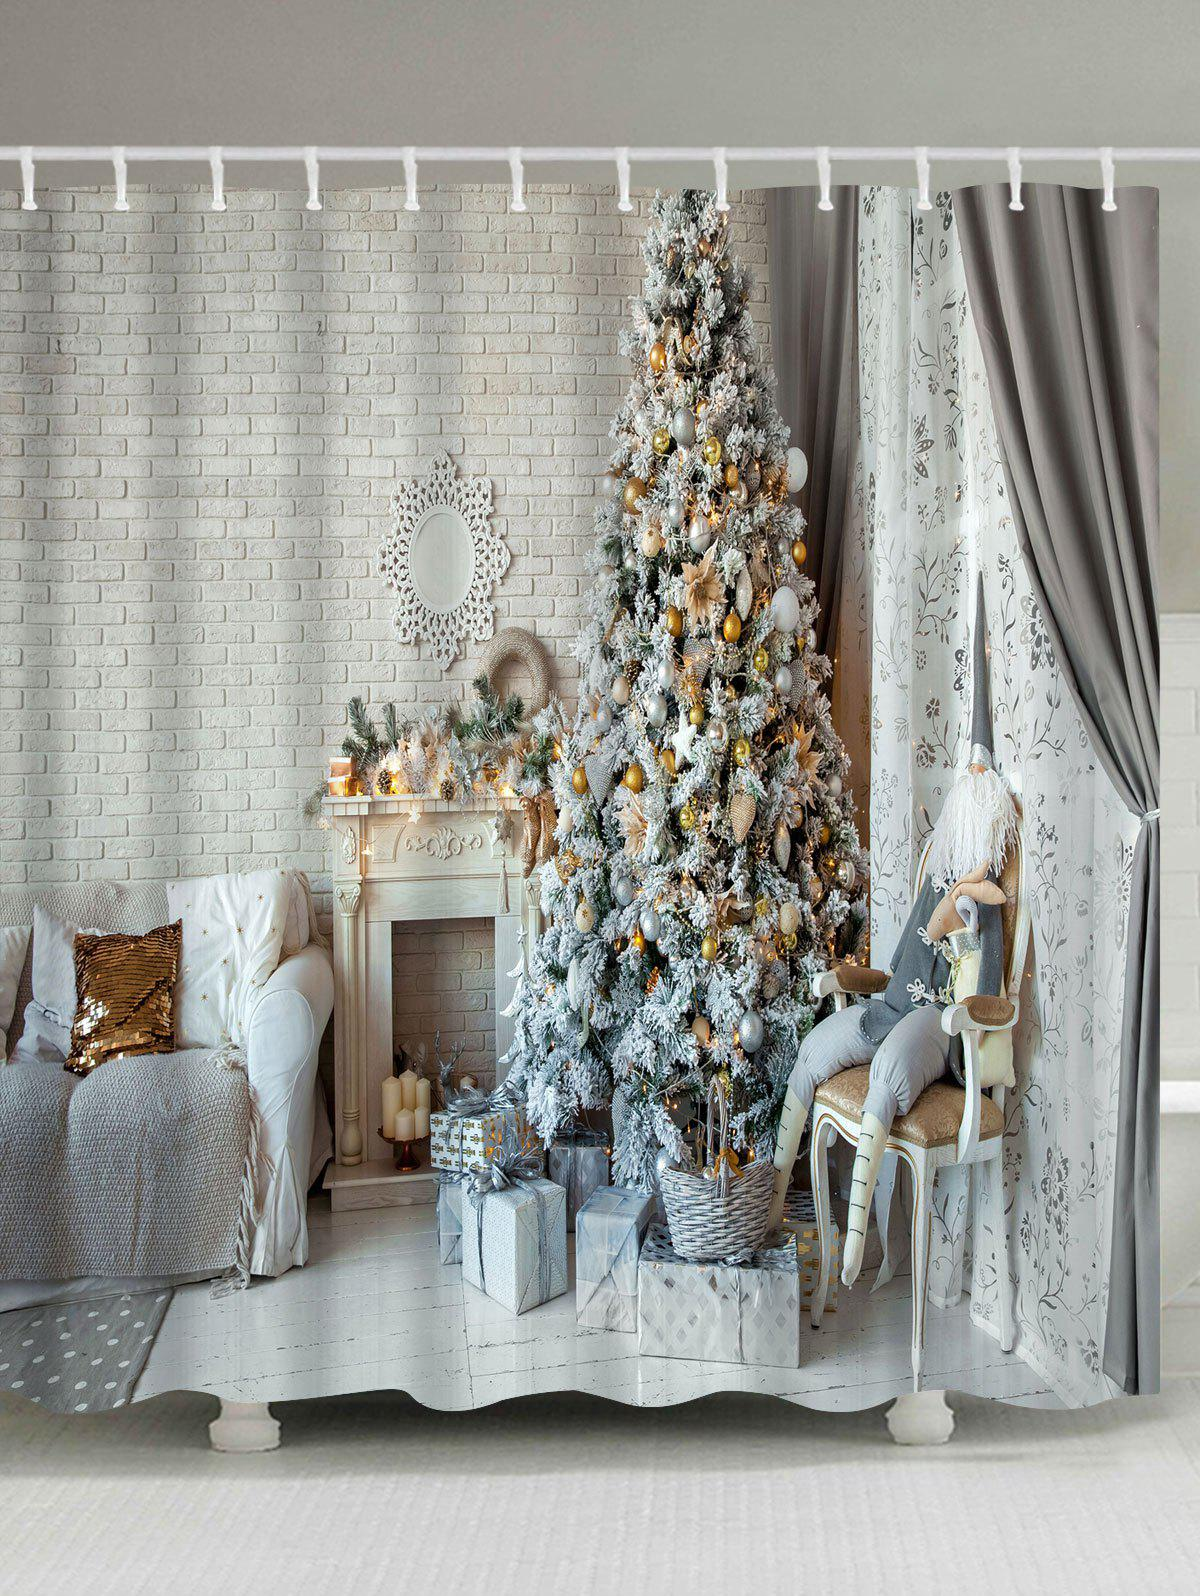 Christmas Tree Fireplace Print Waterproof Bath CurtainHOME<br><br>Size: W71 INCH * L79 INCH; Color: COLORMIX; Products Type: Shower Curtains; Materials: Polyester; Pattern: Christmas Tree; Style: Festival; Number of Hook Holes: W59 inch*L71 inch: 10; W71 inch*L71 inch: 12; W71 inch*L79 inch: 12; Package Contents: 1 x Shower Curtain 1 x Hooks (Set);